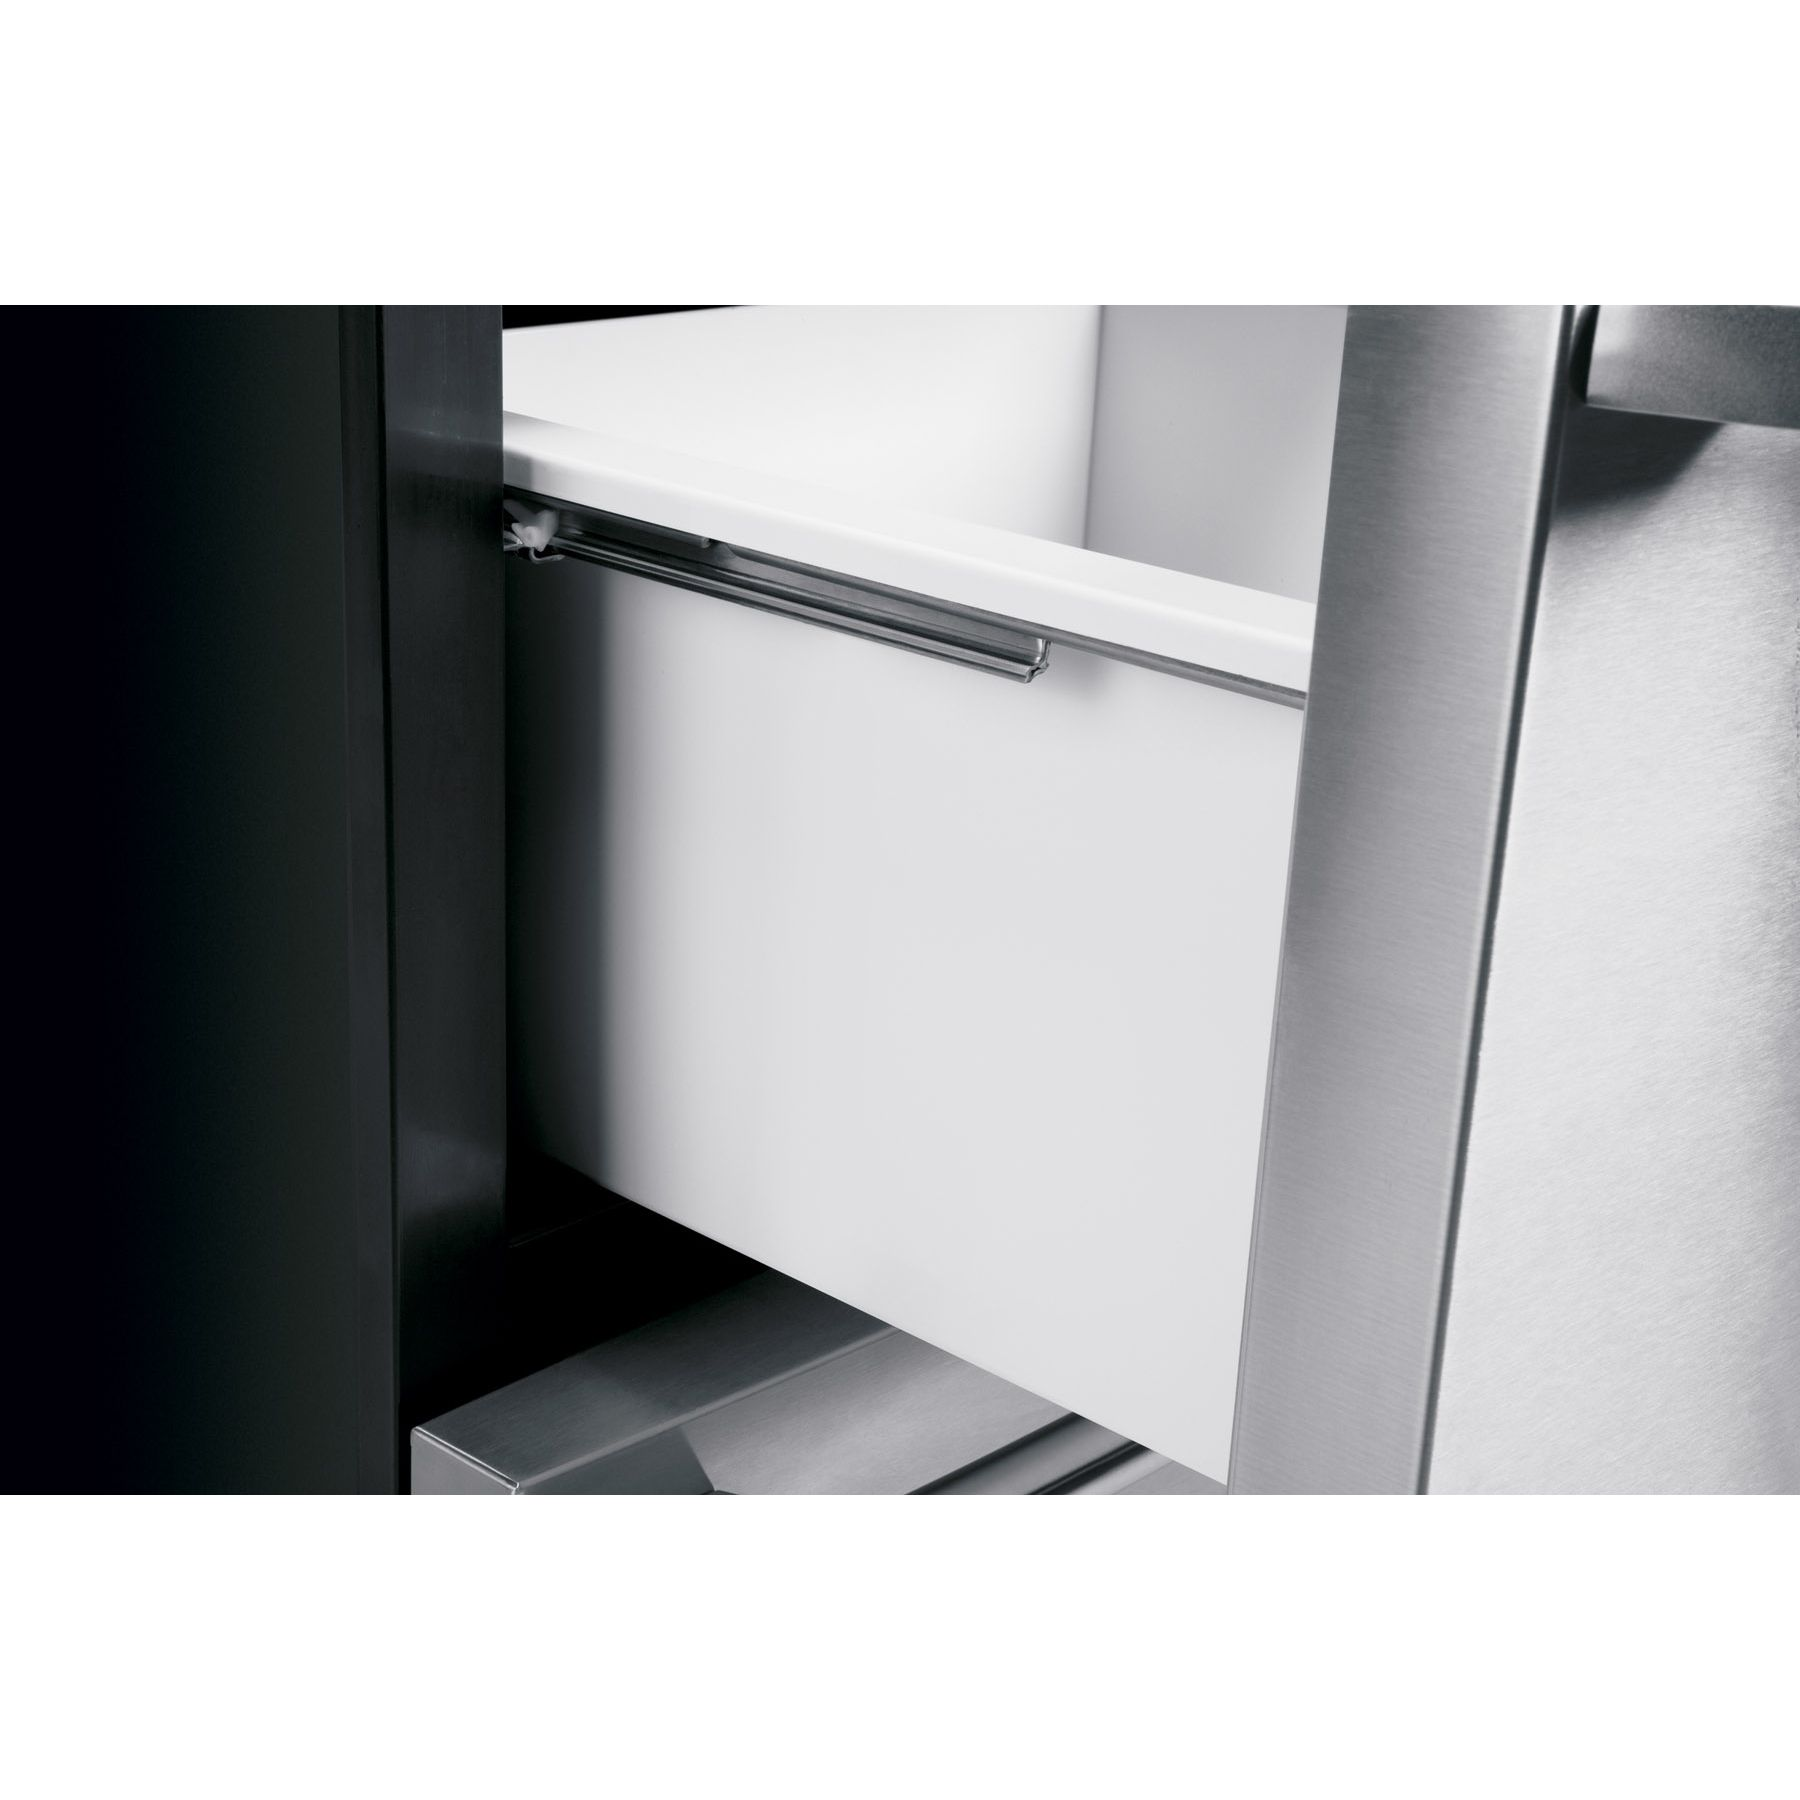 Electrolux 6.0 cu. ft. Double Drawer Refrigerator - Stainless Steel